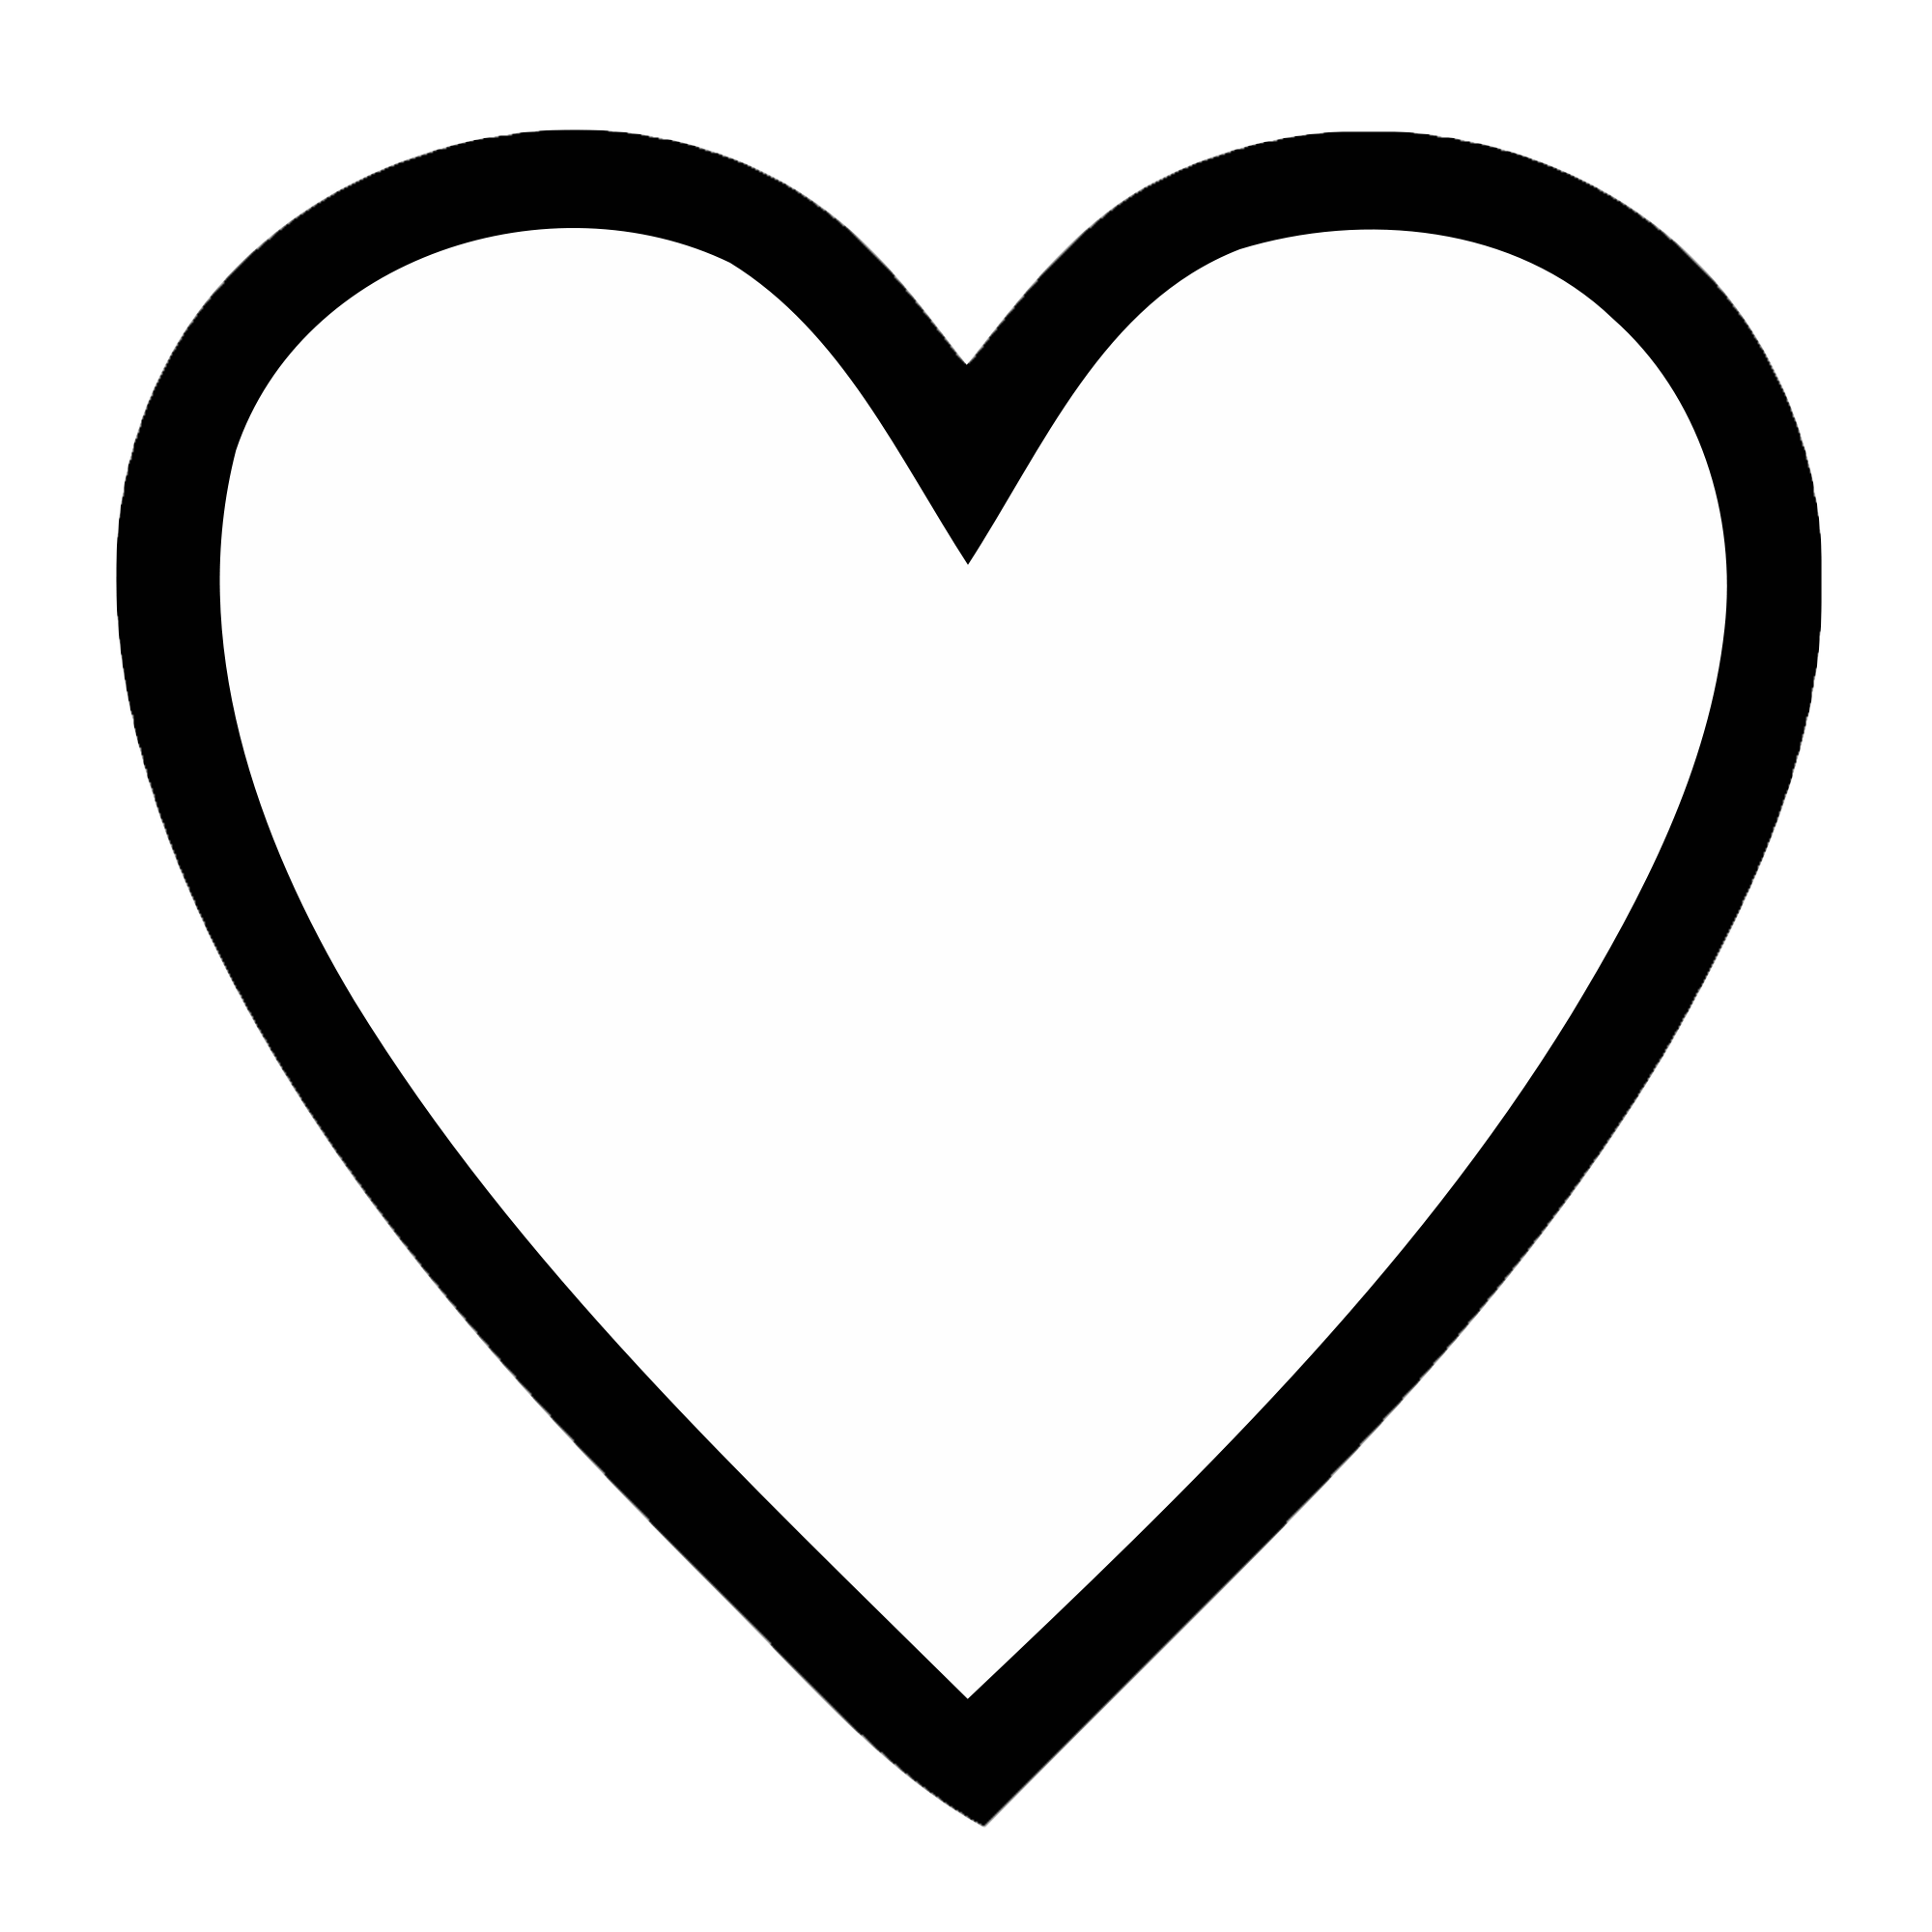 Heart Clipart Black And White Transparent.